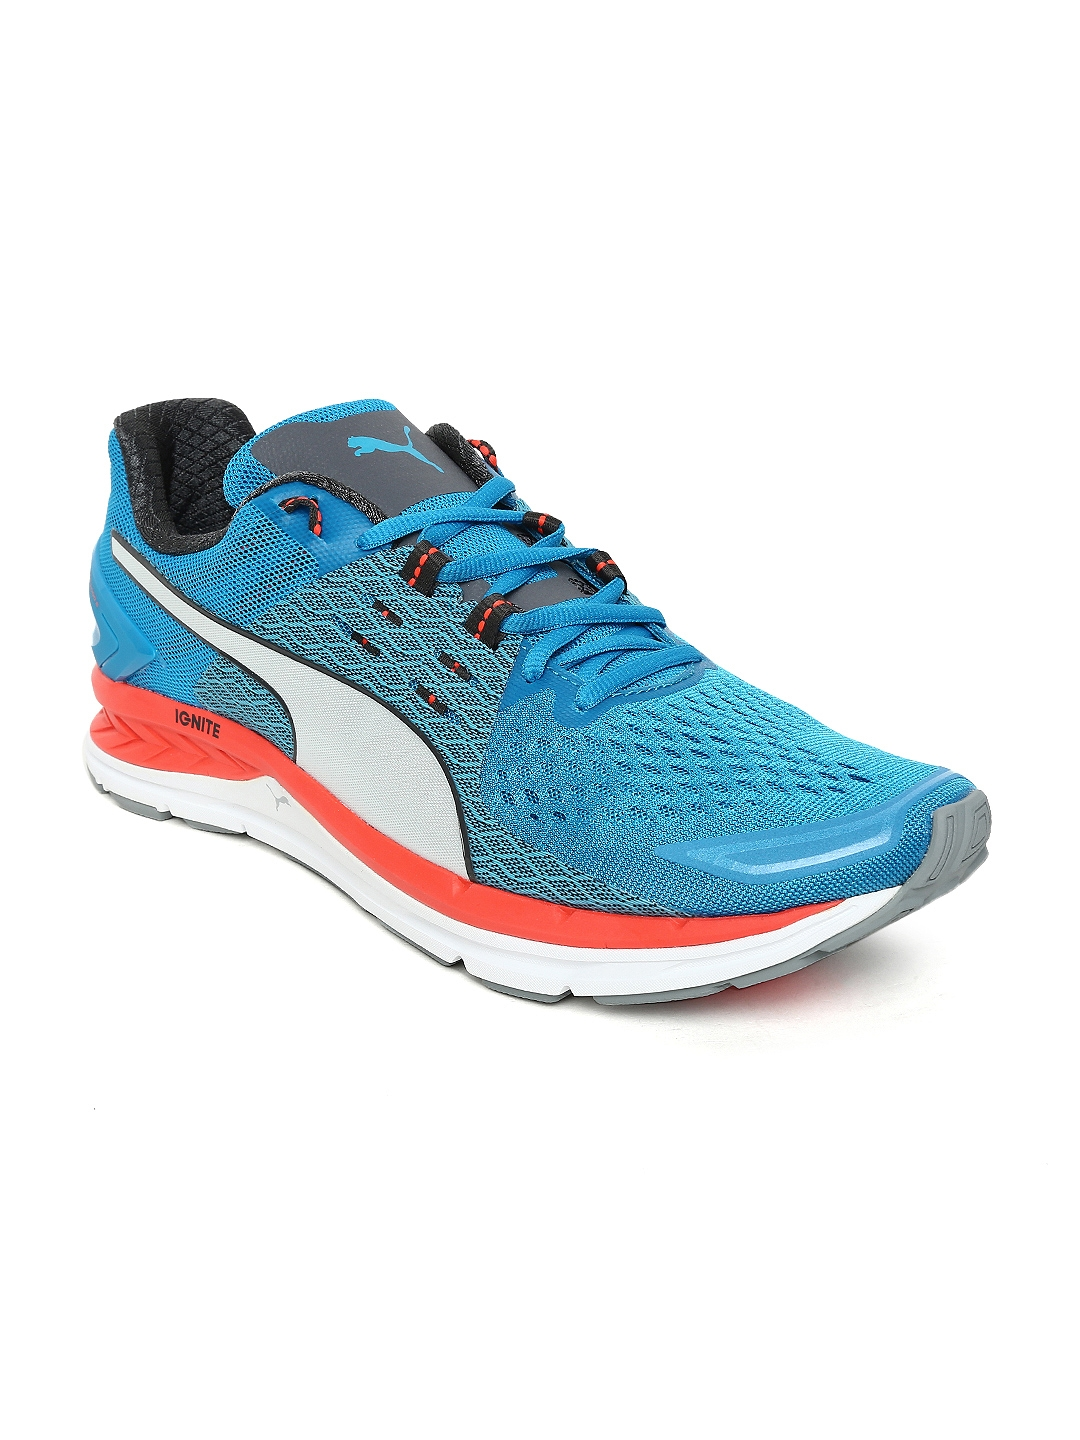 Buy Puma Men Blue Speed 1000 S IGNITE Running Shoes - Sports Shoes ... aa5192e4a